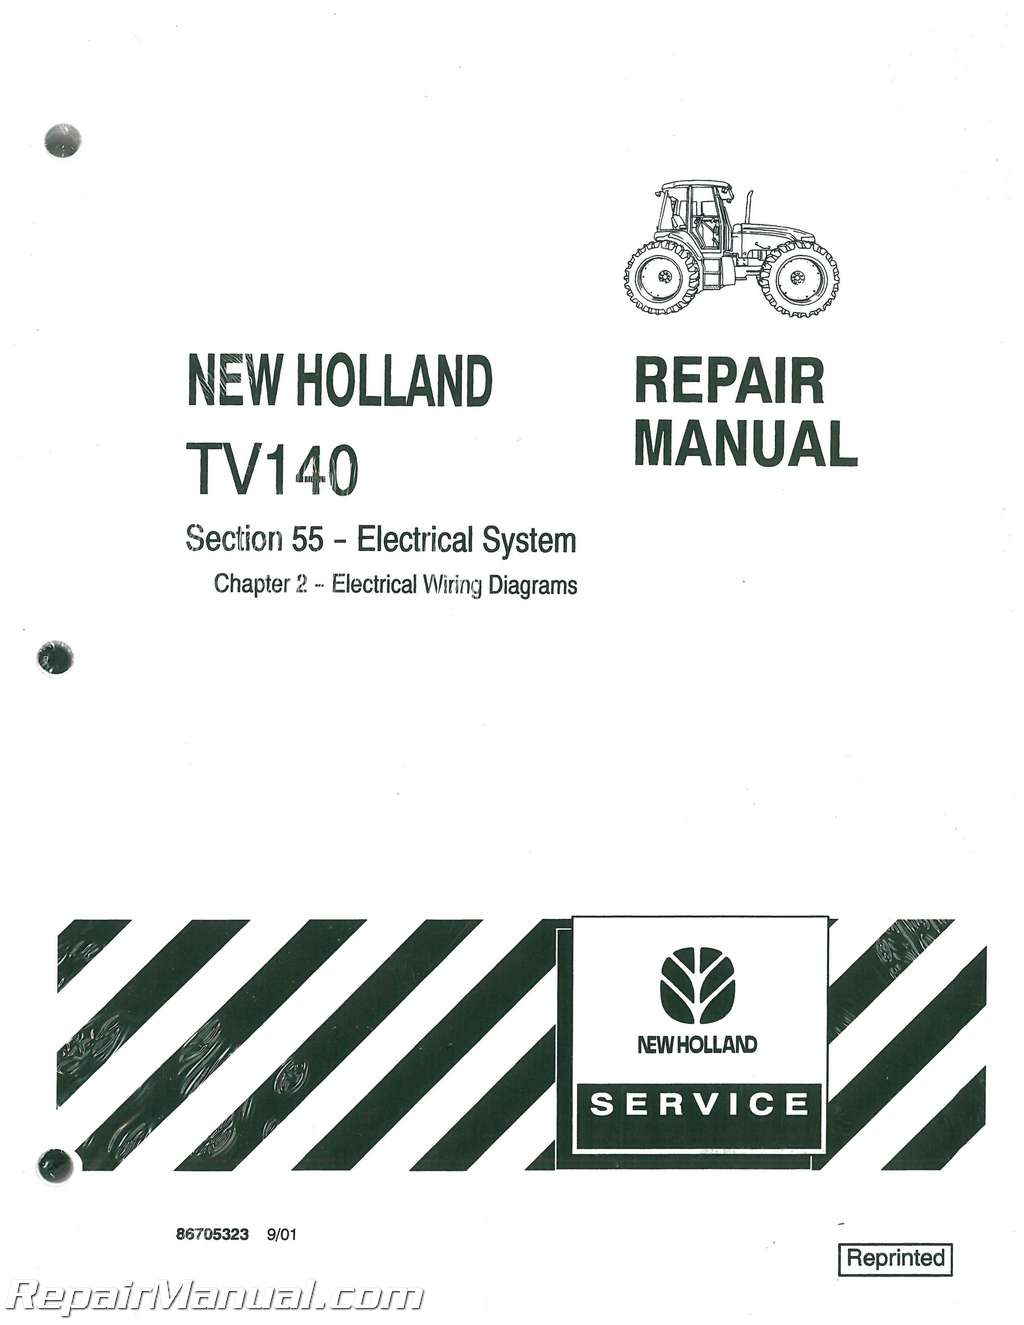 ford new holland tv140 bidirectional 4wd dsl tractor service manual rh repairmanual com